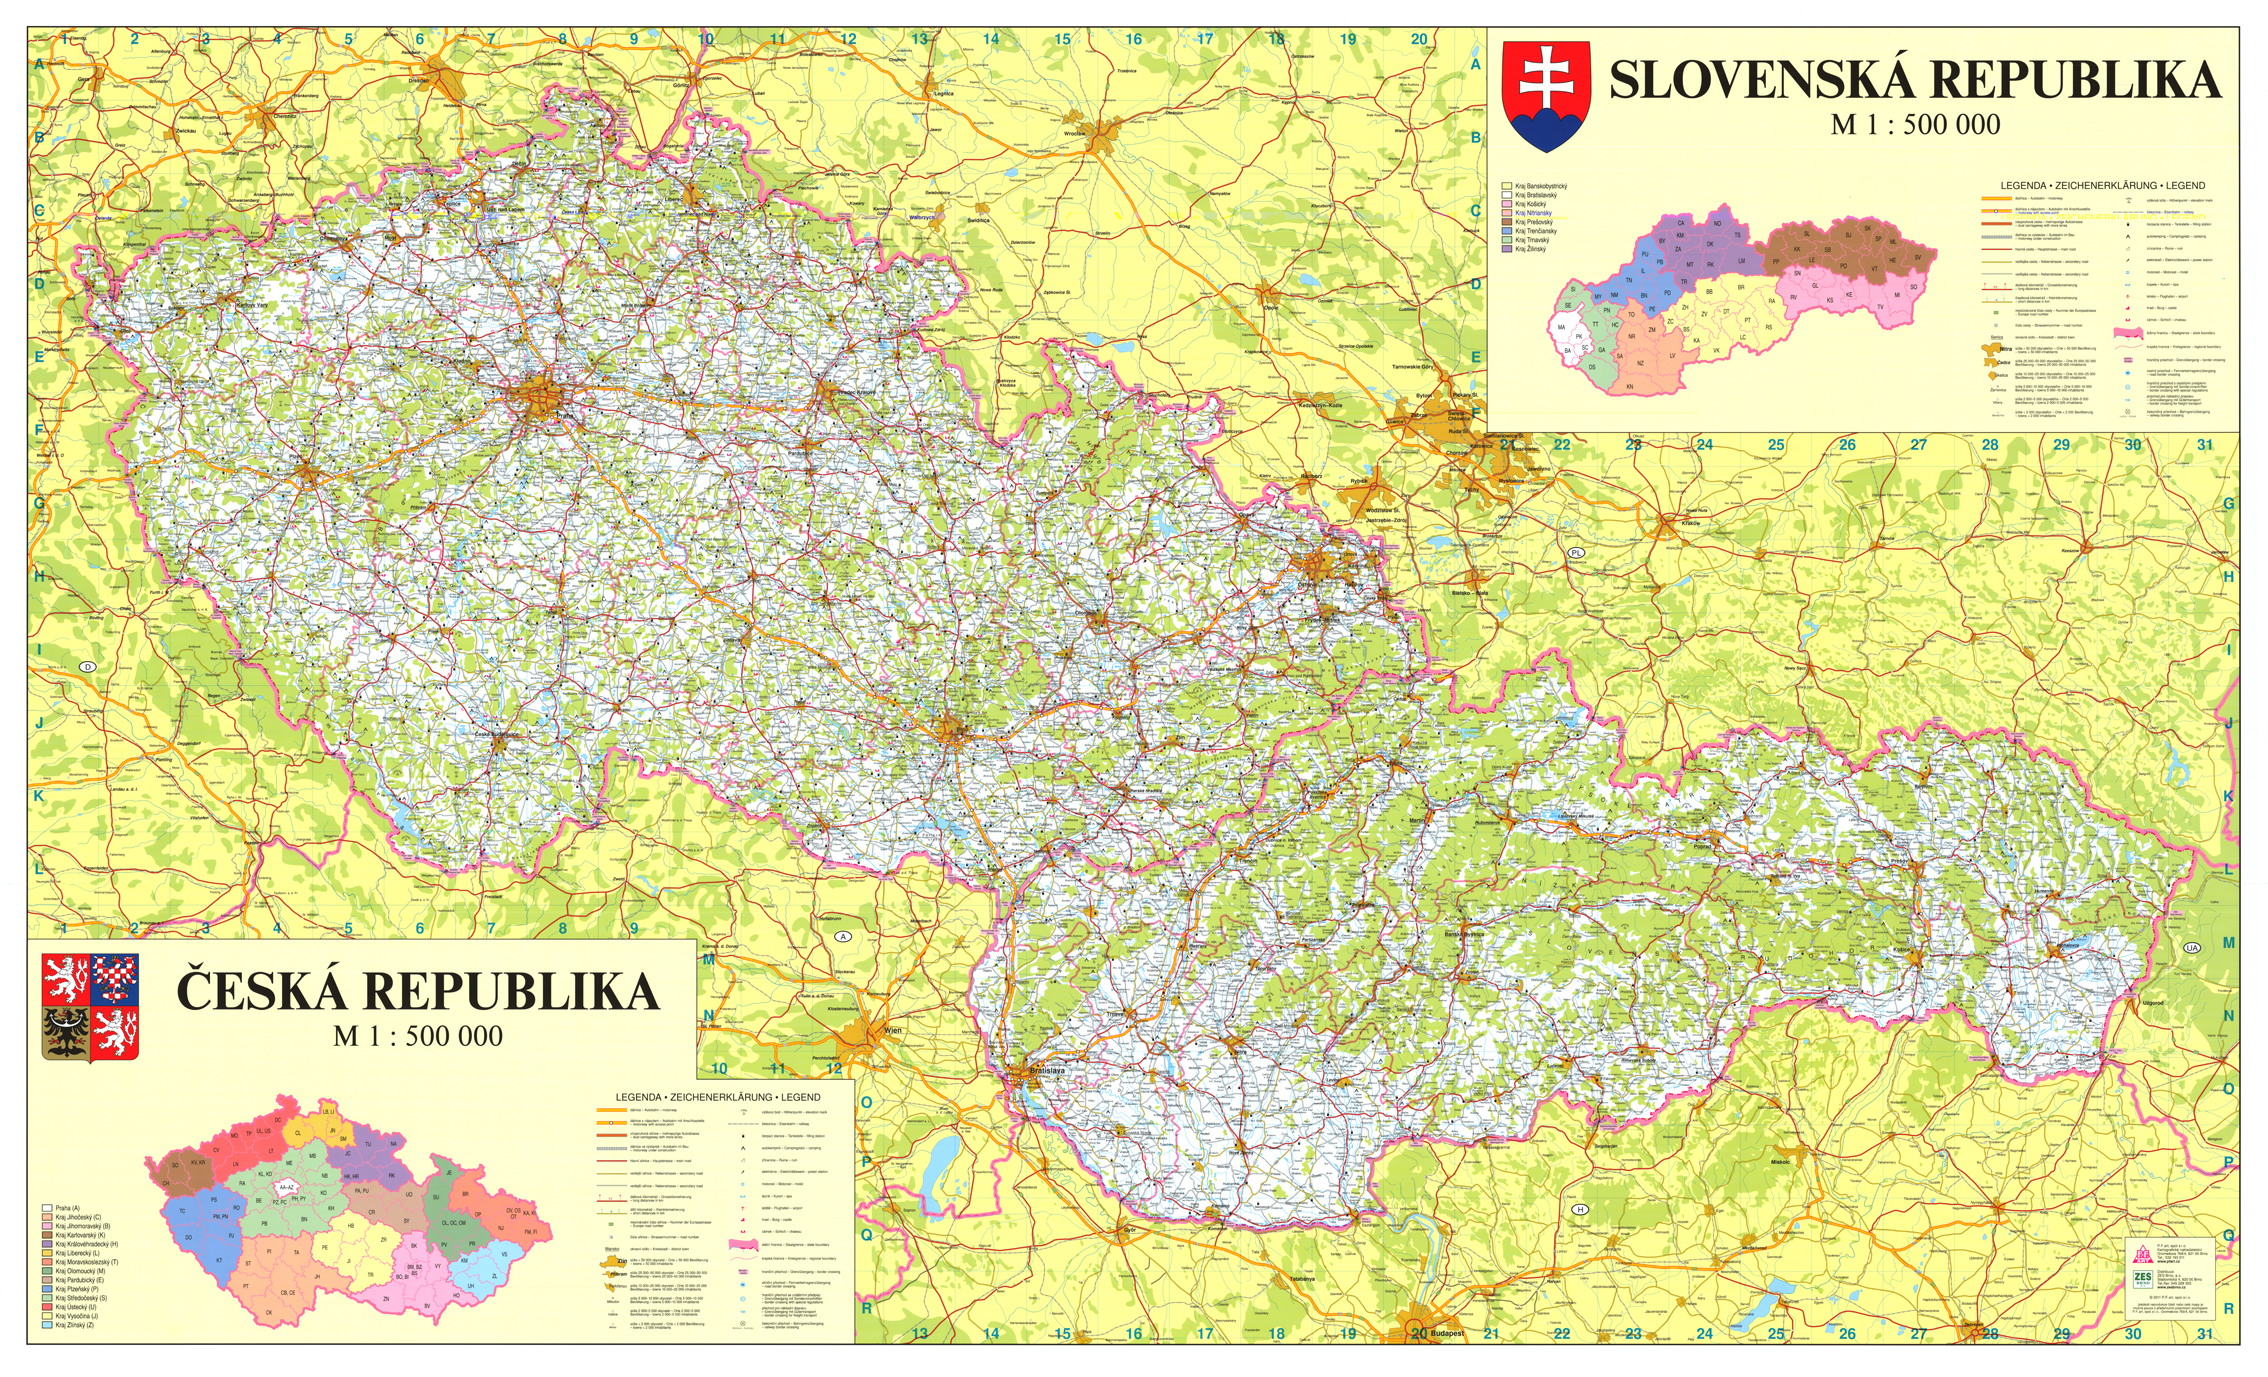 SLOVENSKO MAPA EPUB DOWNLOAD